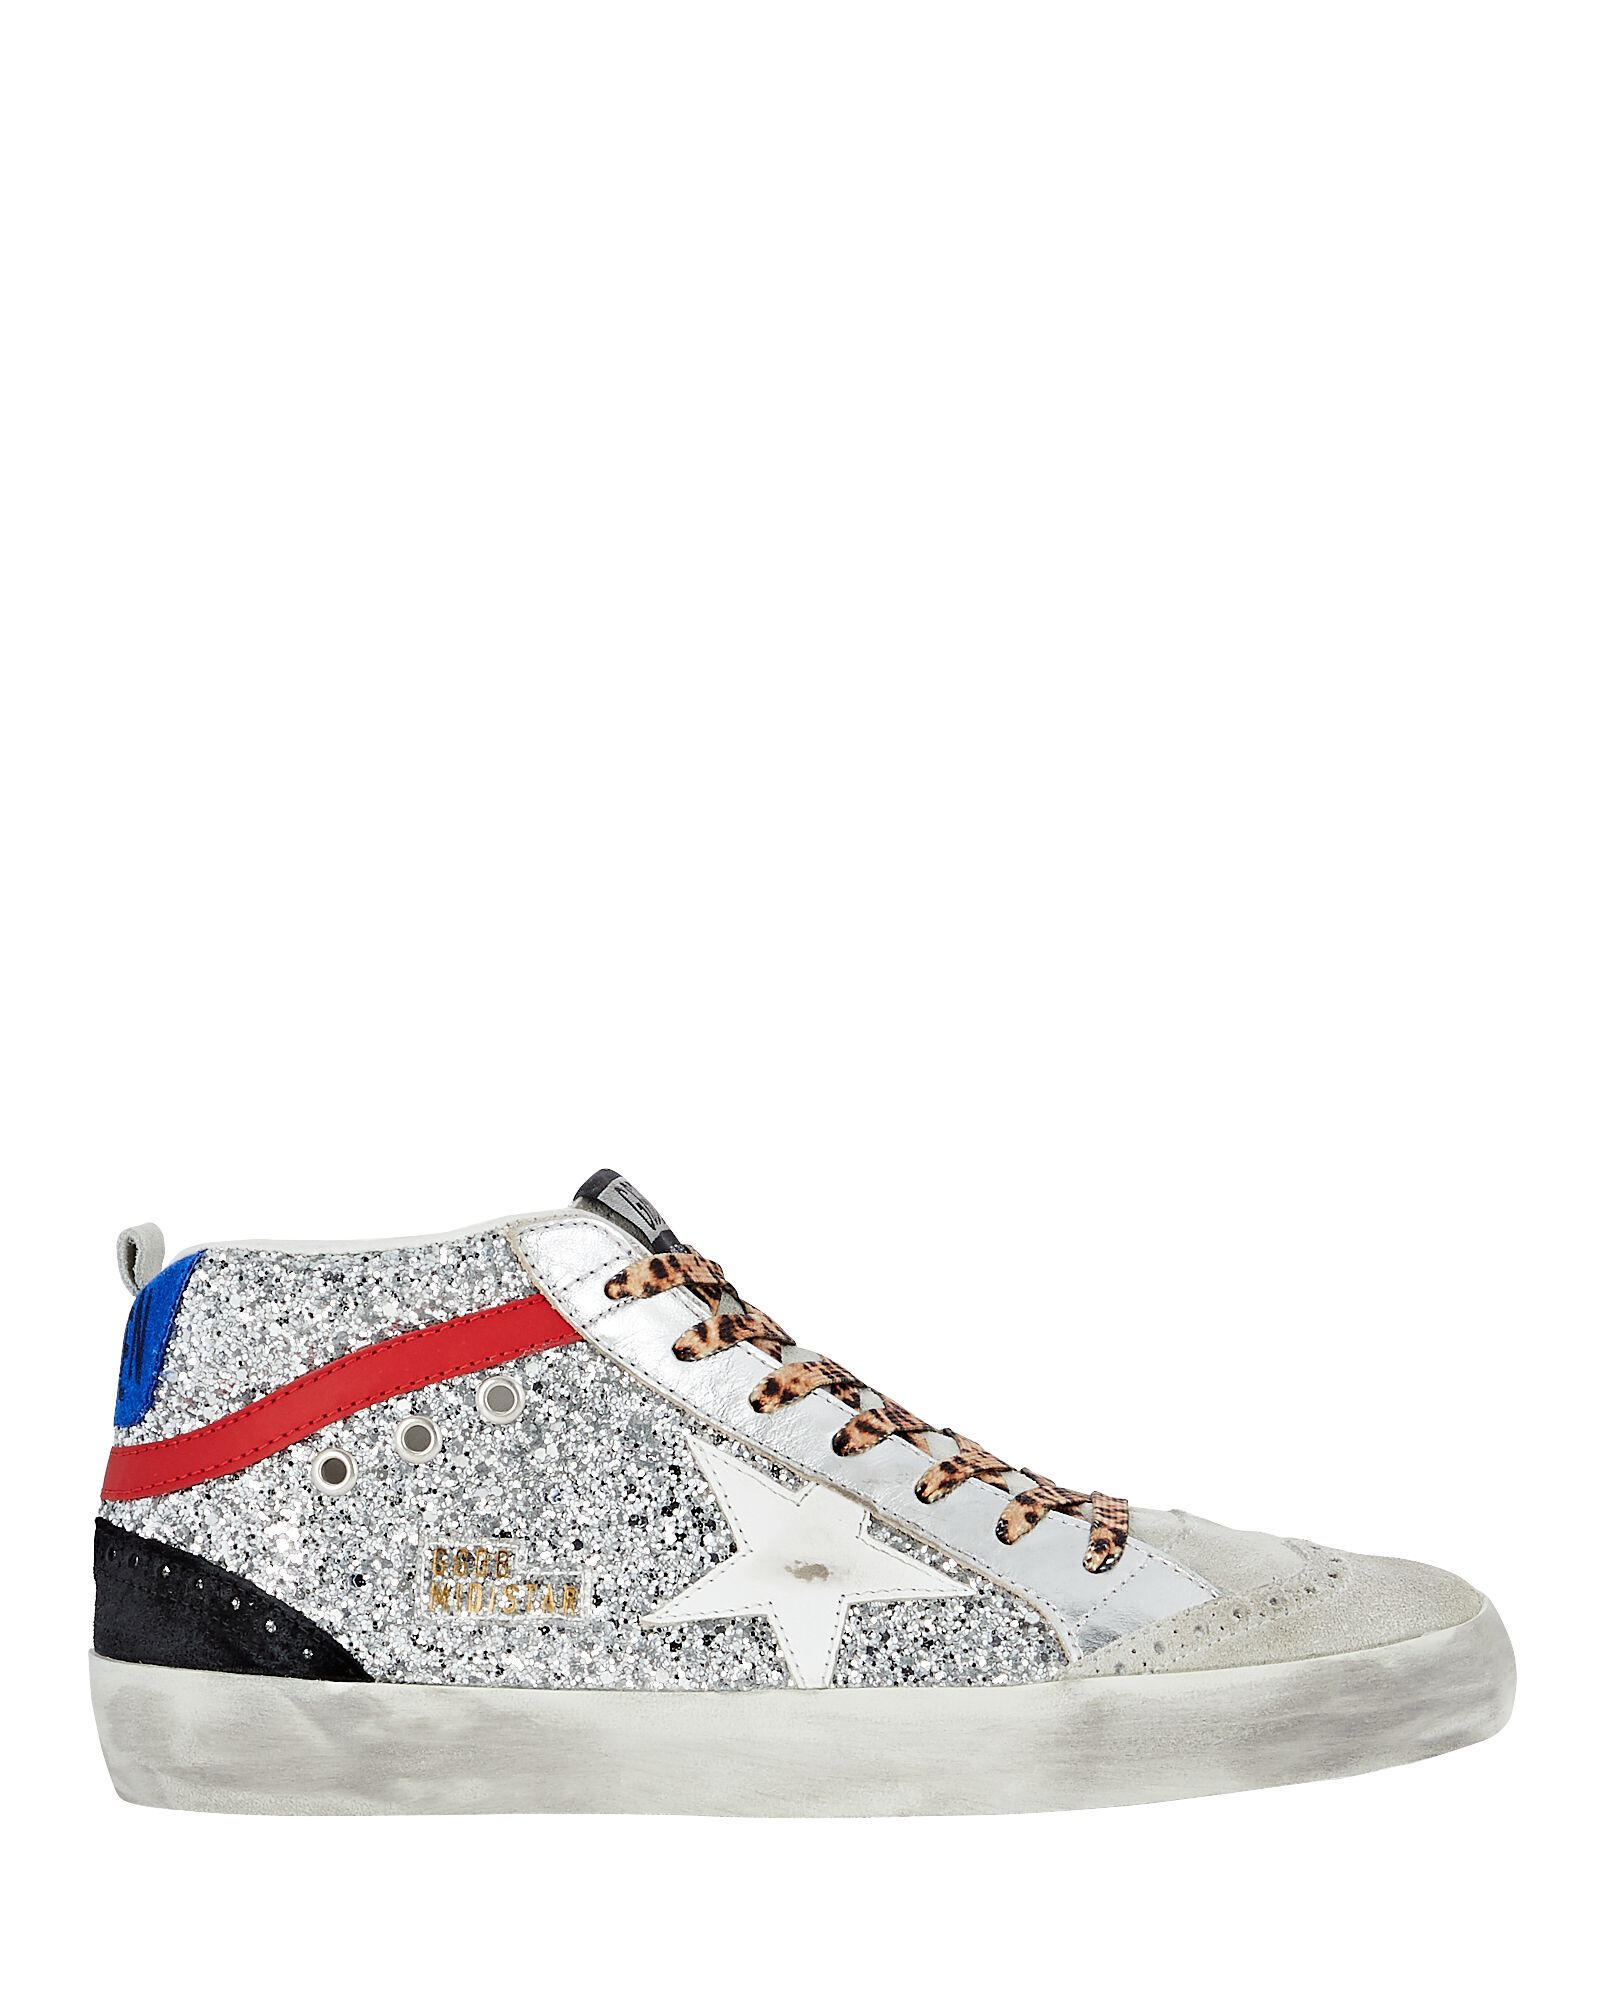 Mid Star Glitter Sneakers, SILVER, hi-res